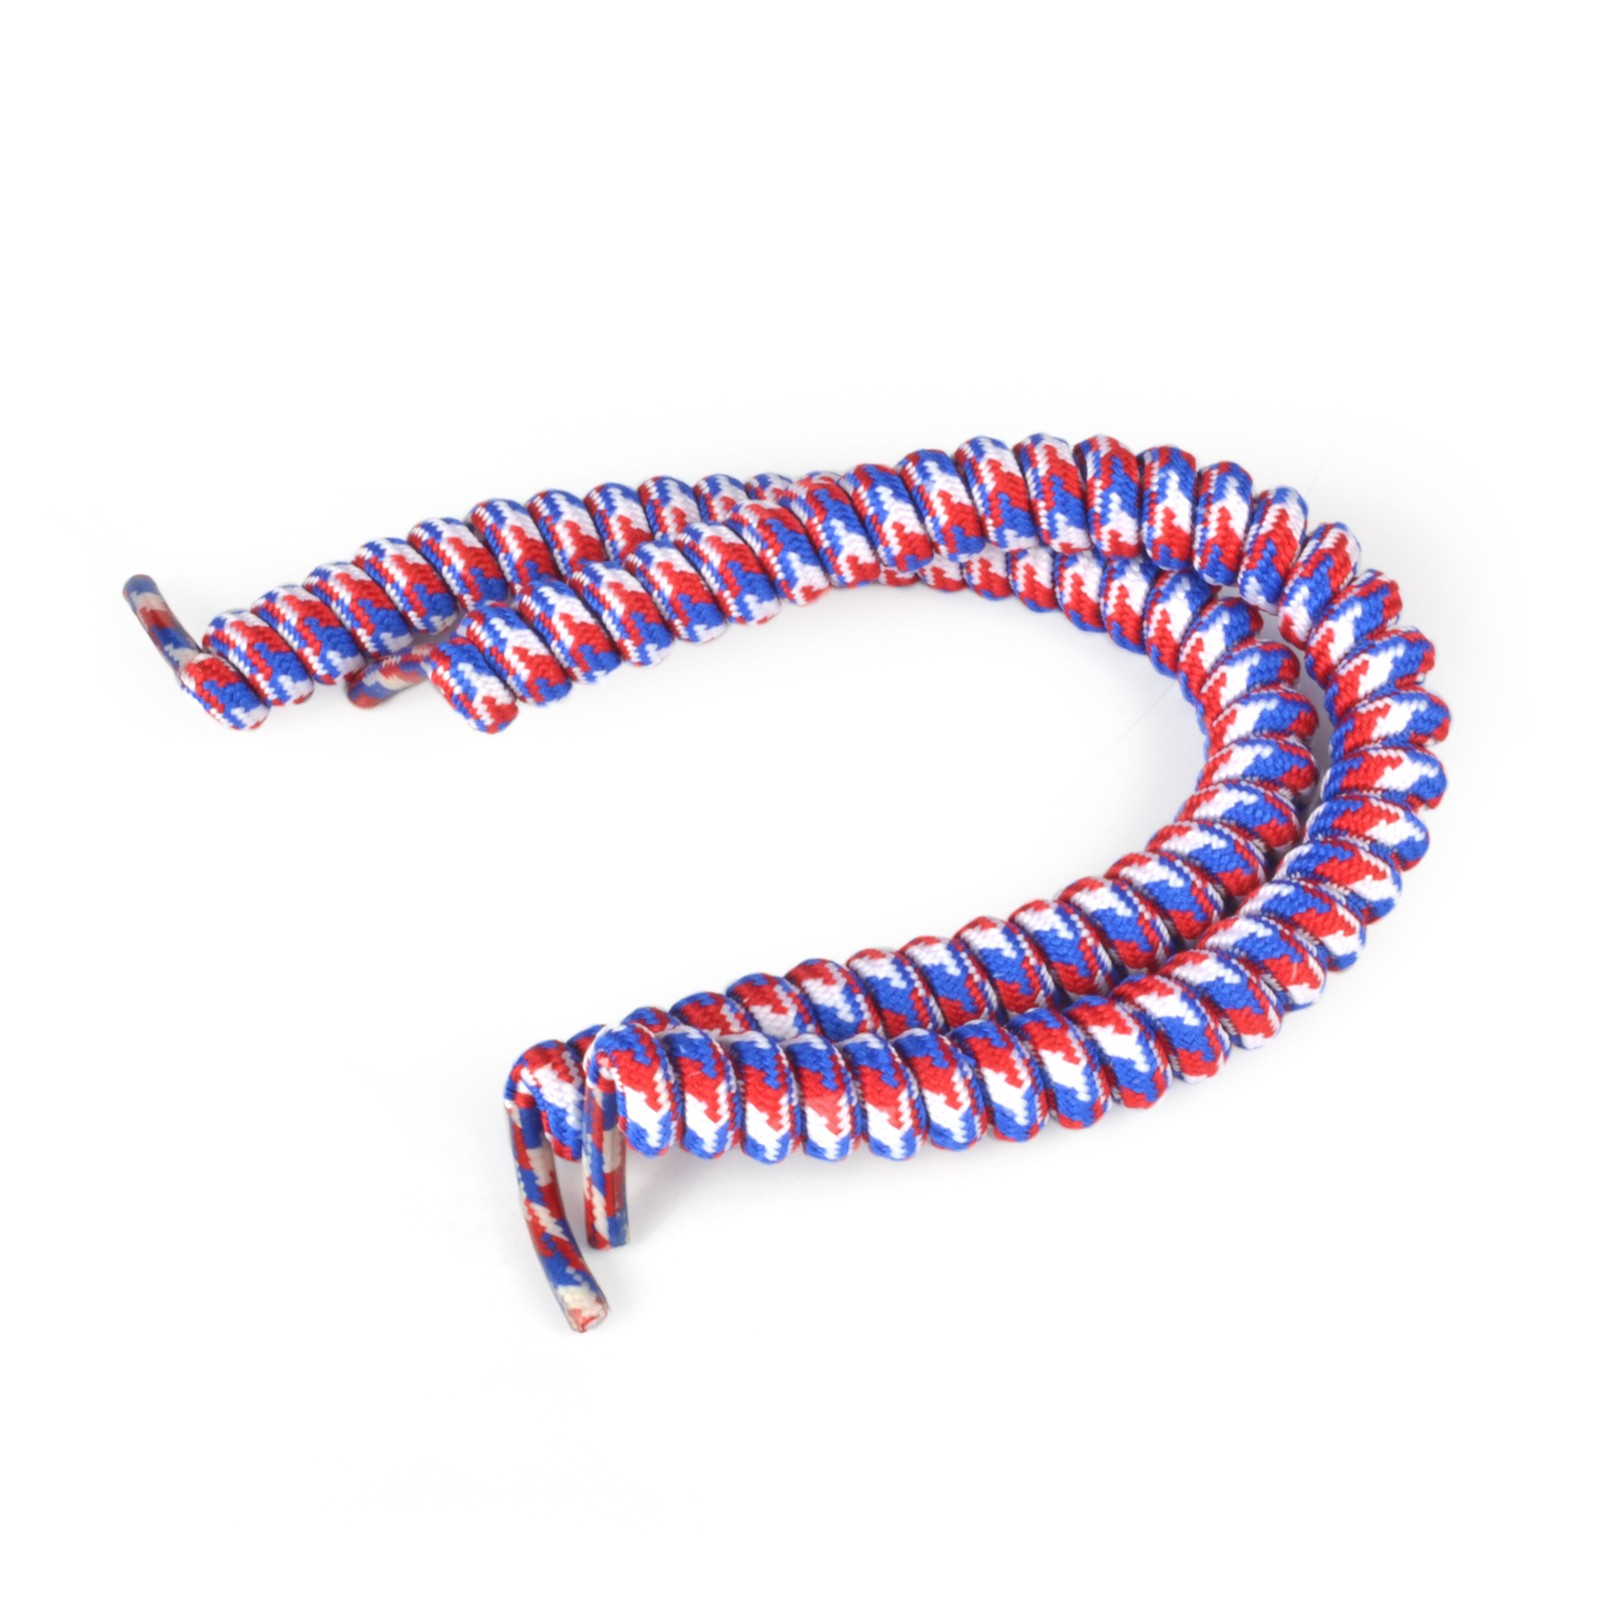 Vizi Coil Red/white/blue Loose